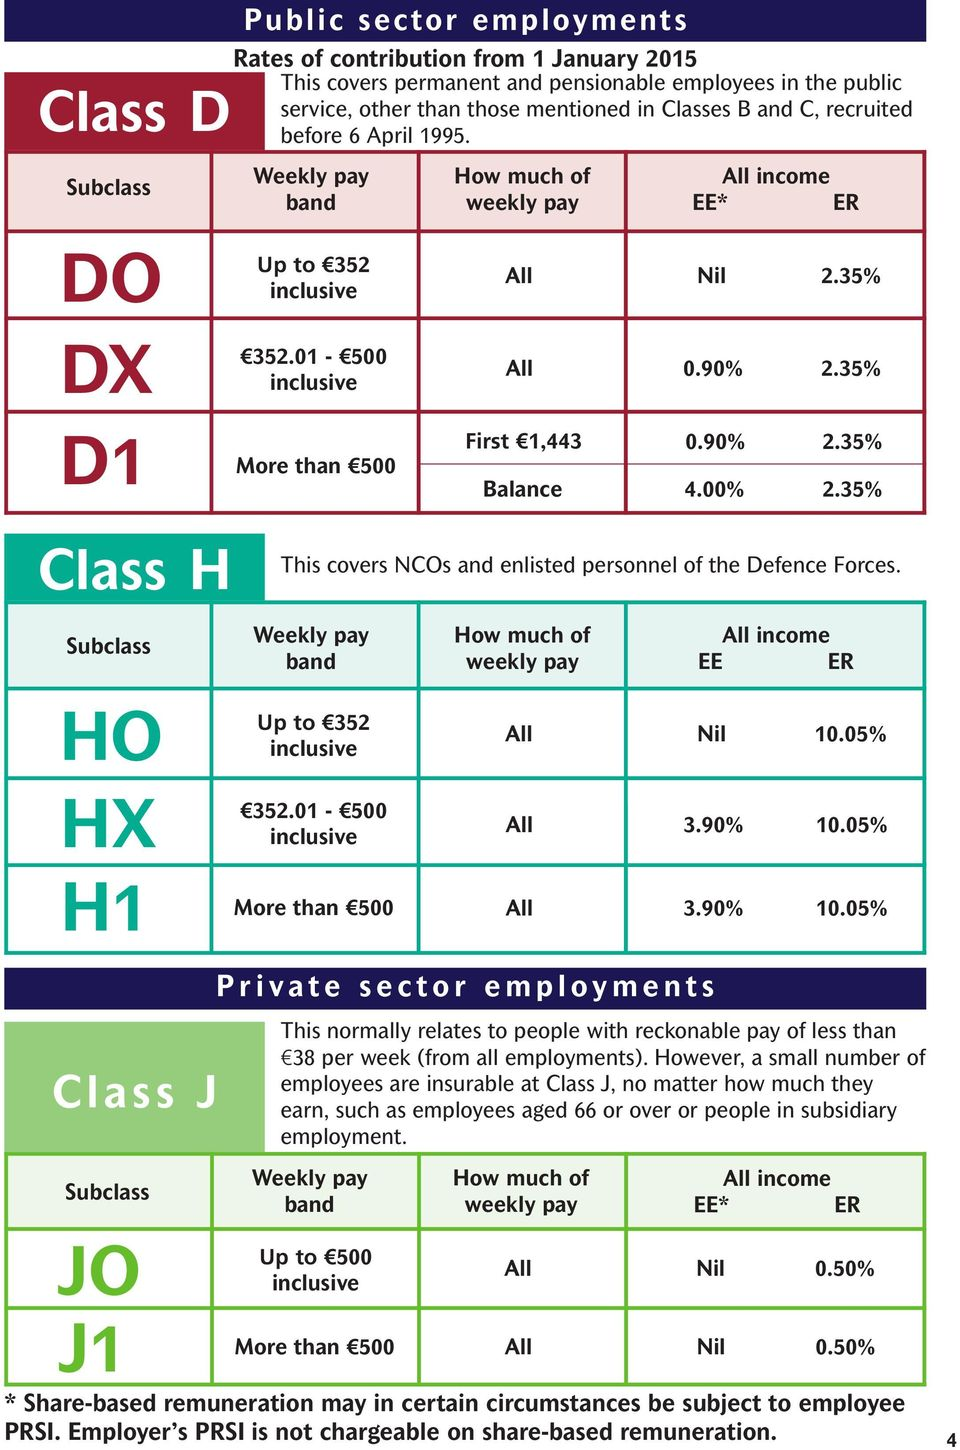 35% Class H This covers NCOs and enlisted personnel of the Defence Forces. EE ER HO HX H1 352.01-500 More than 500 All Nil 10.05% All 3.90% 10.